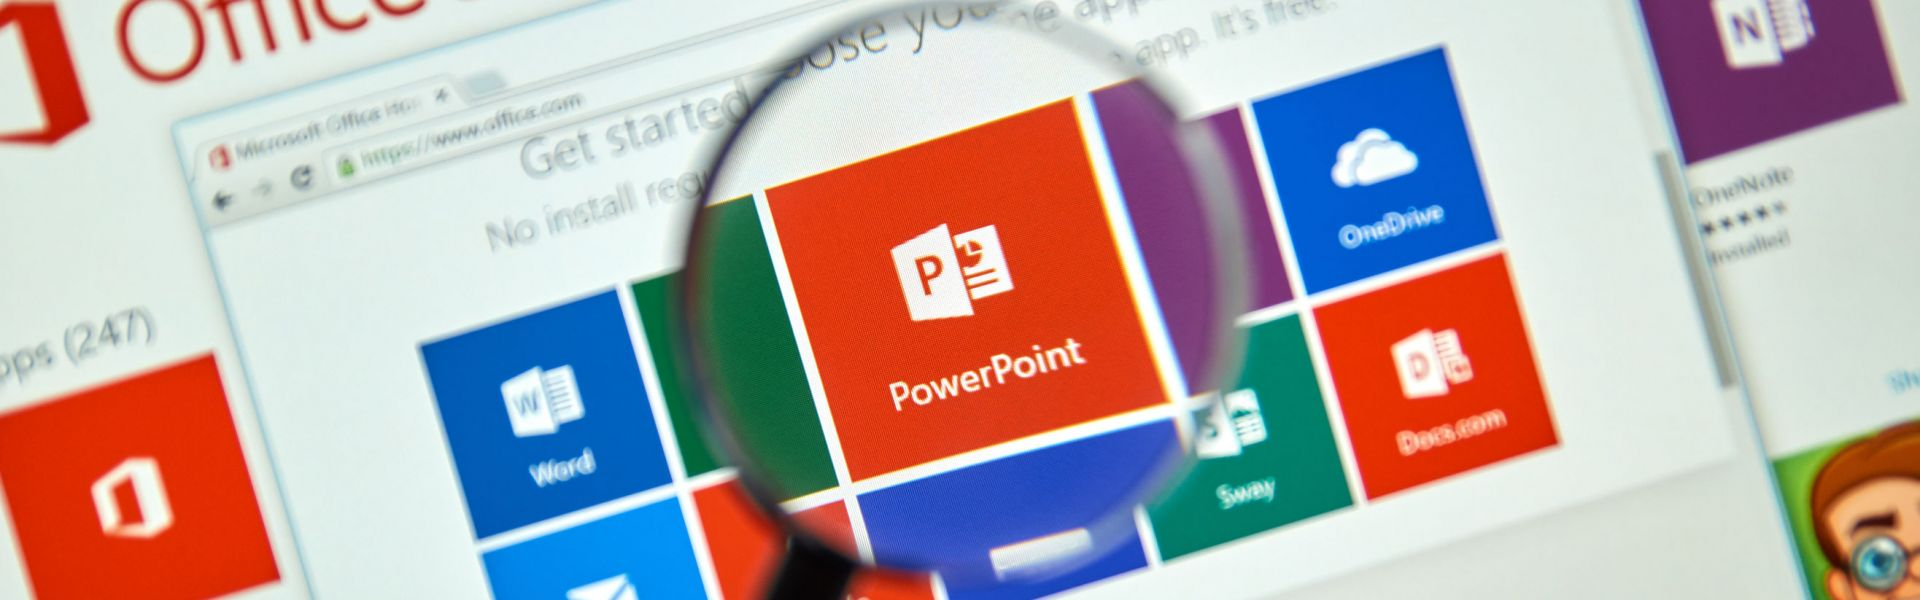 Microsoft PowerPoint basis